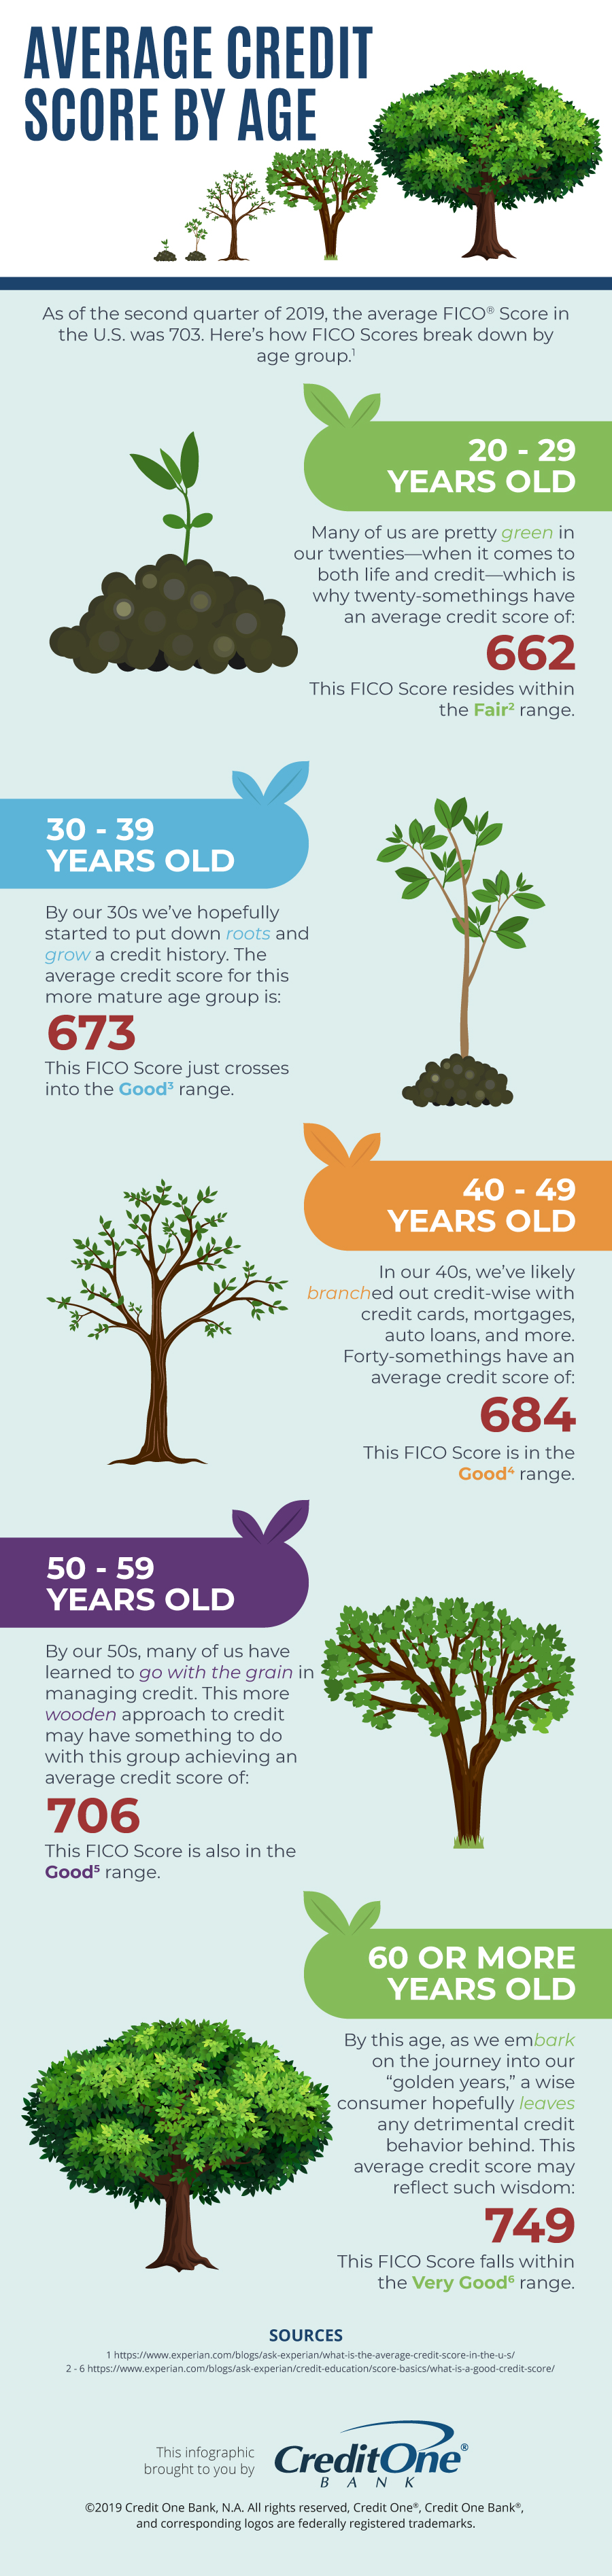 Infographic on average credit score by age